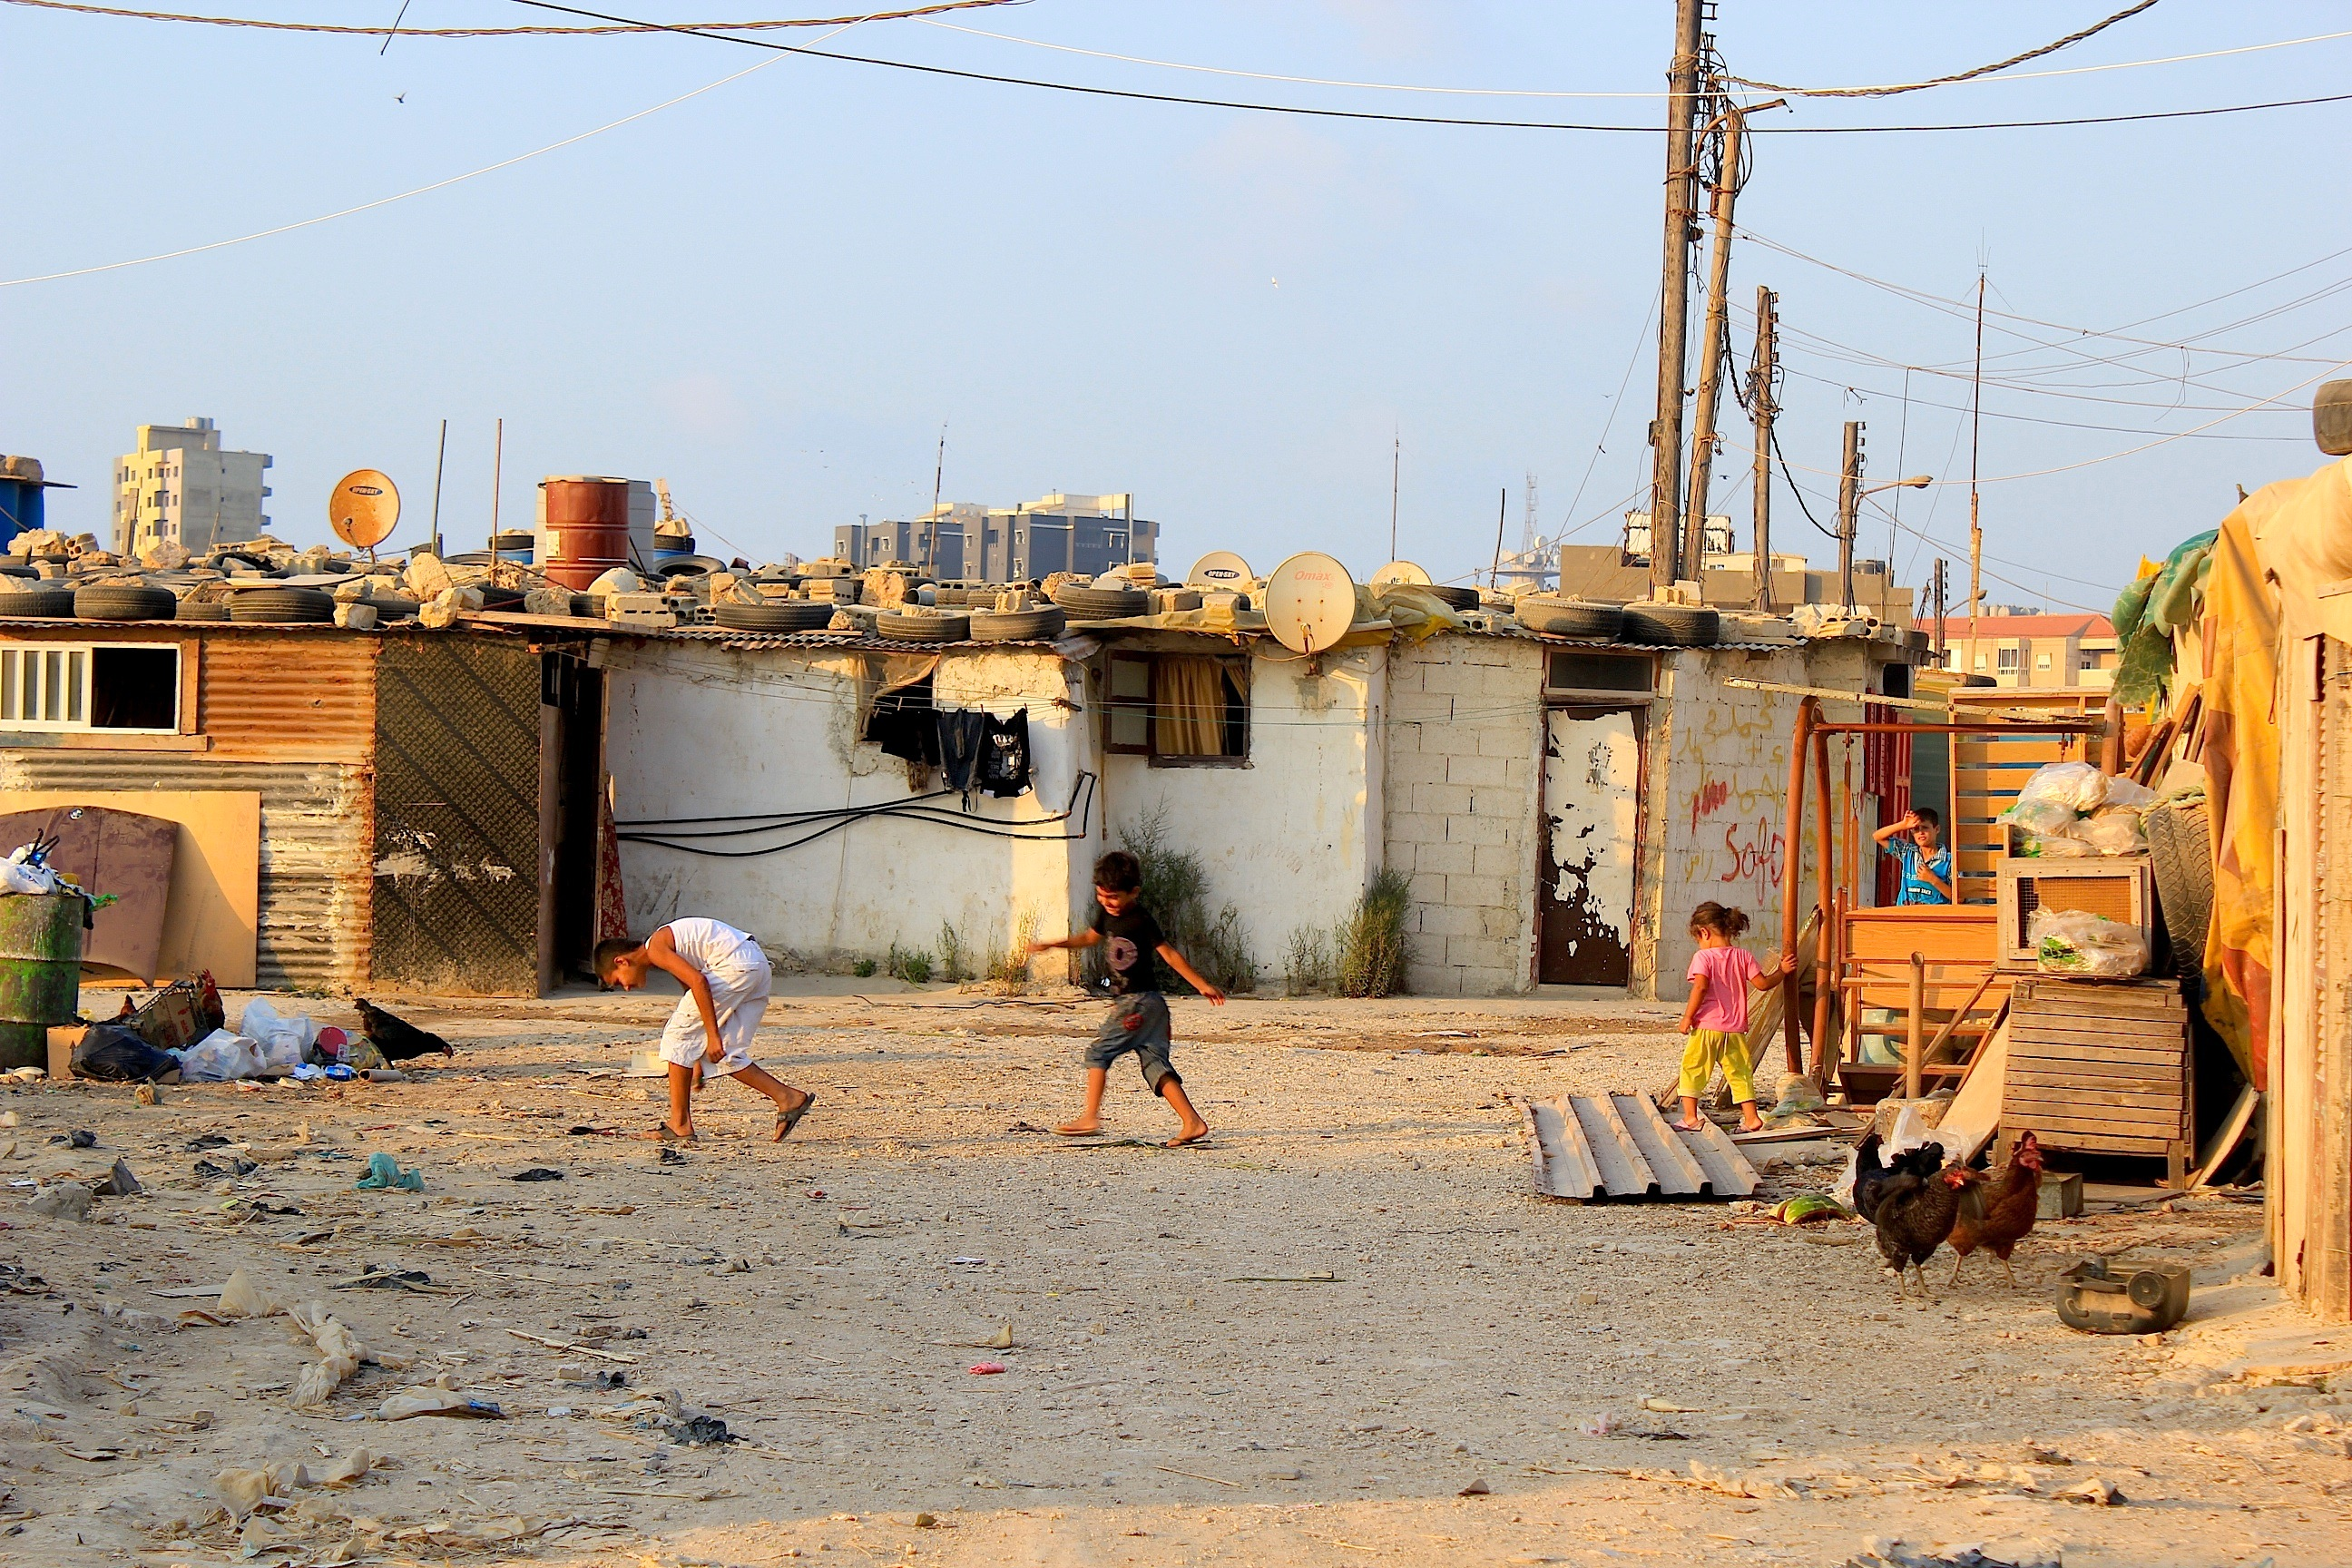 Children Slum Tripoli